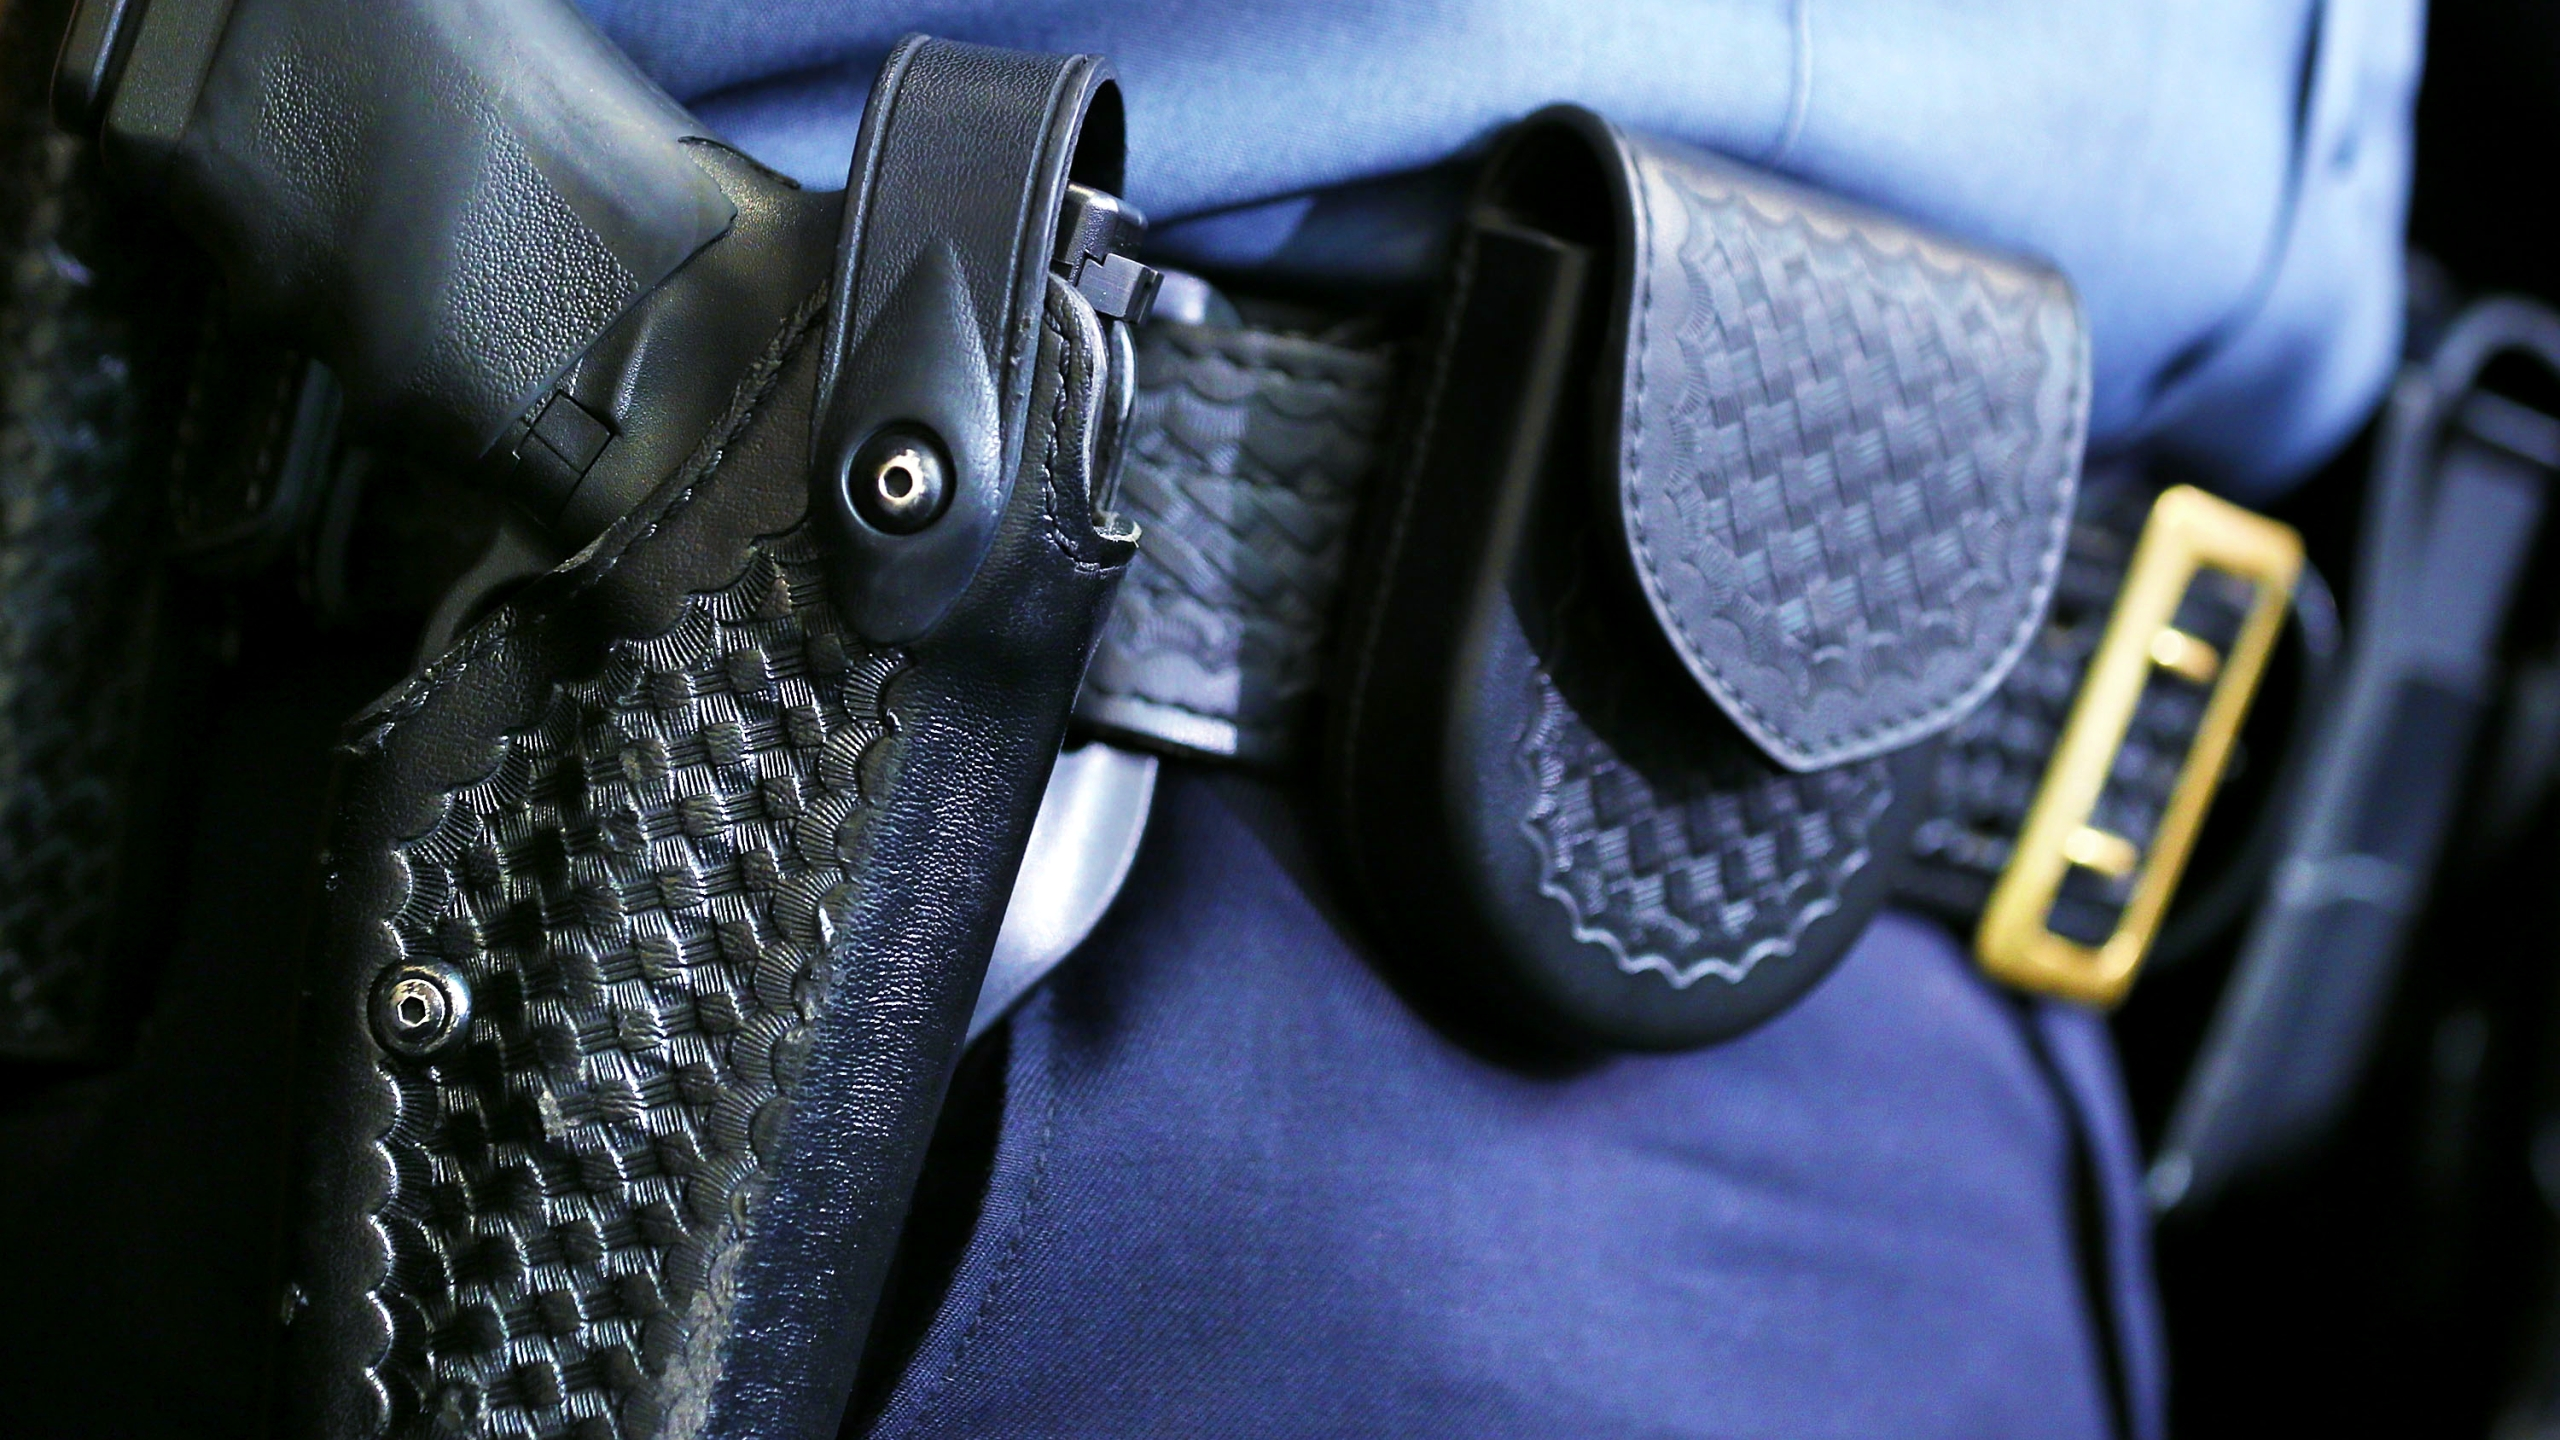 A holstered police gun on an officer's belt